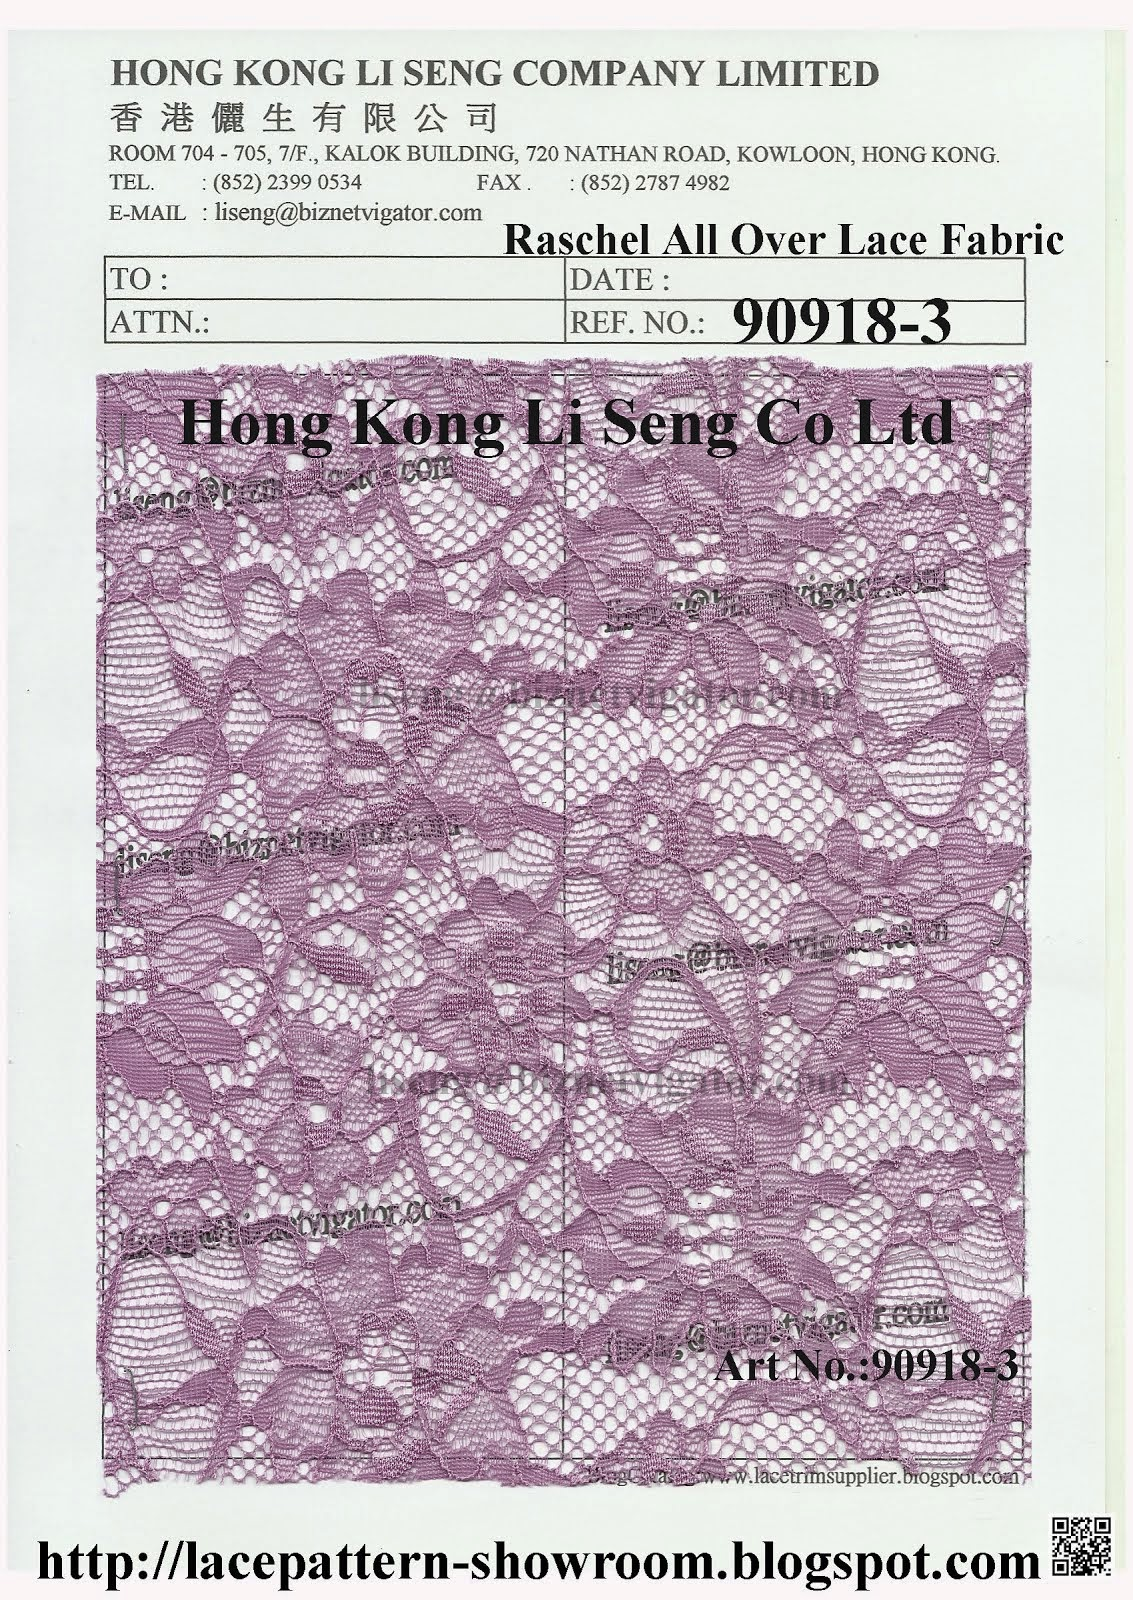 Dye to Match Raschel All Over Lace Fabric Manufacturer Wholesaler Supplier-Hong Kong Li Seng Co Ltd